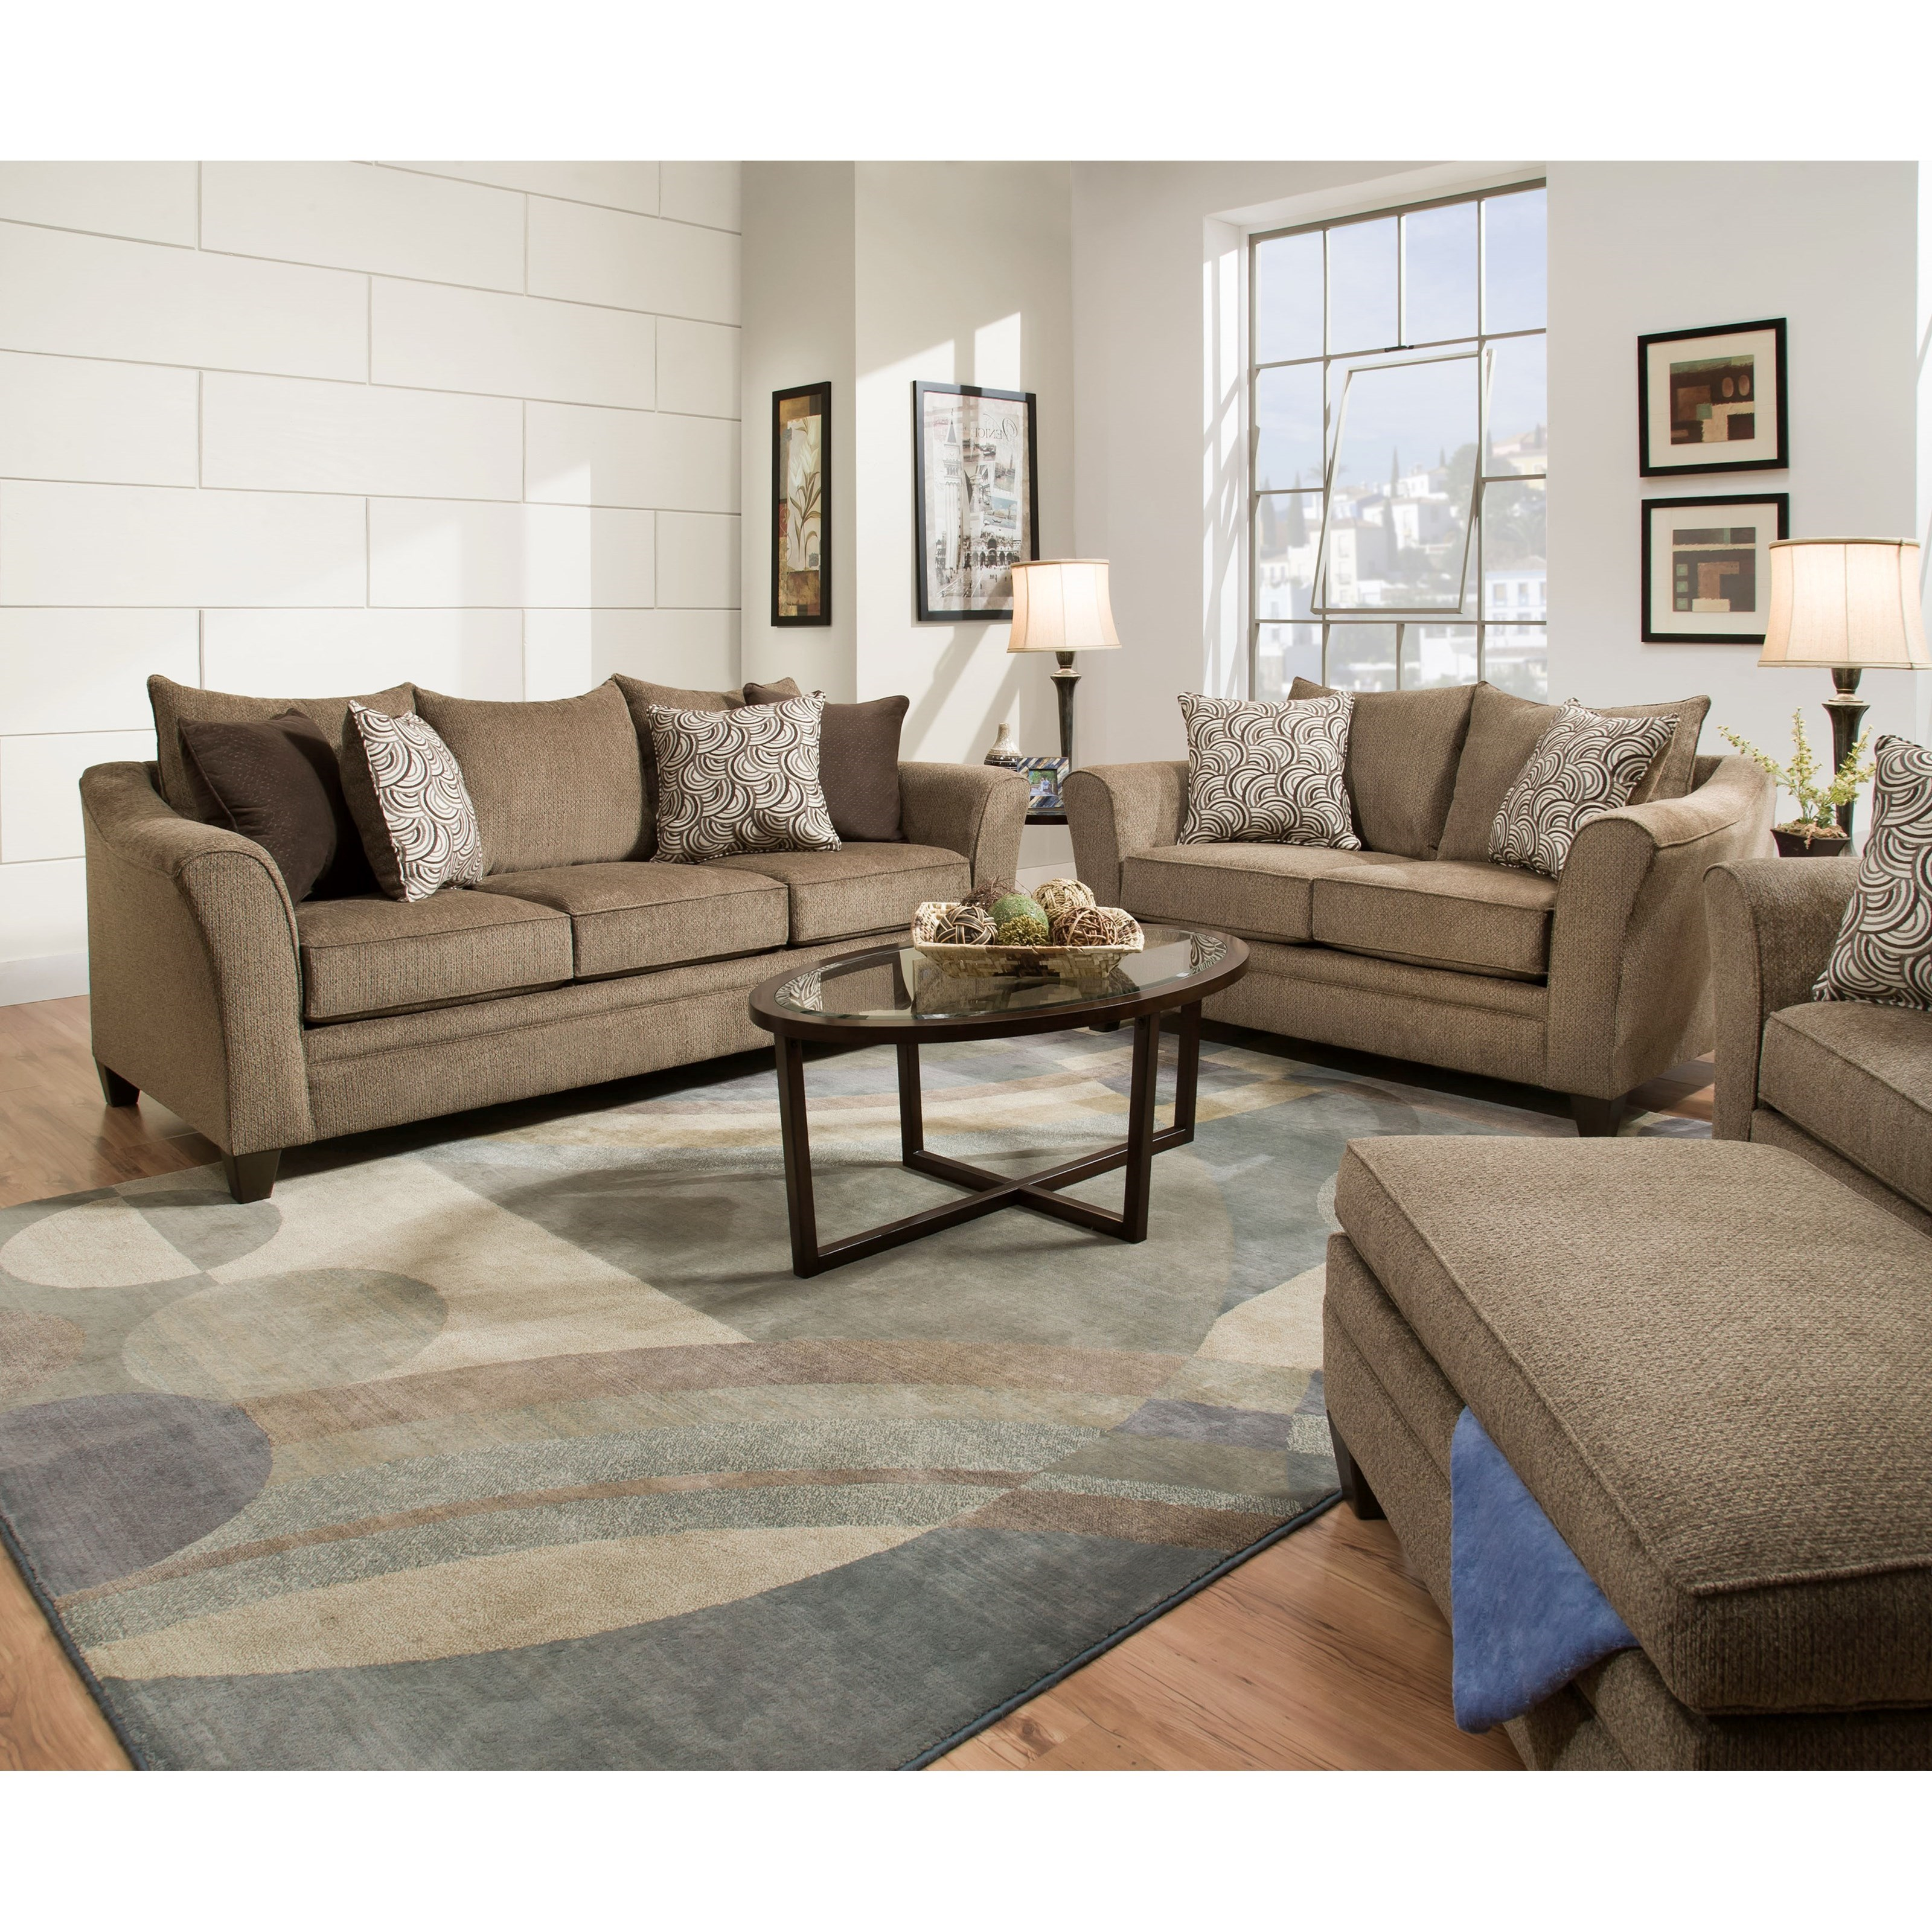 6485 Living Room Group by United Furniture Industries at Dream Home Interiors